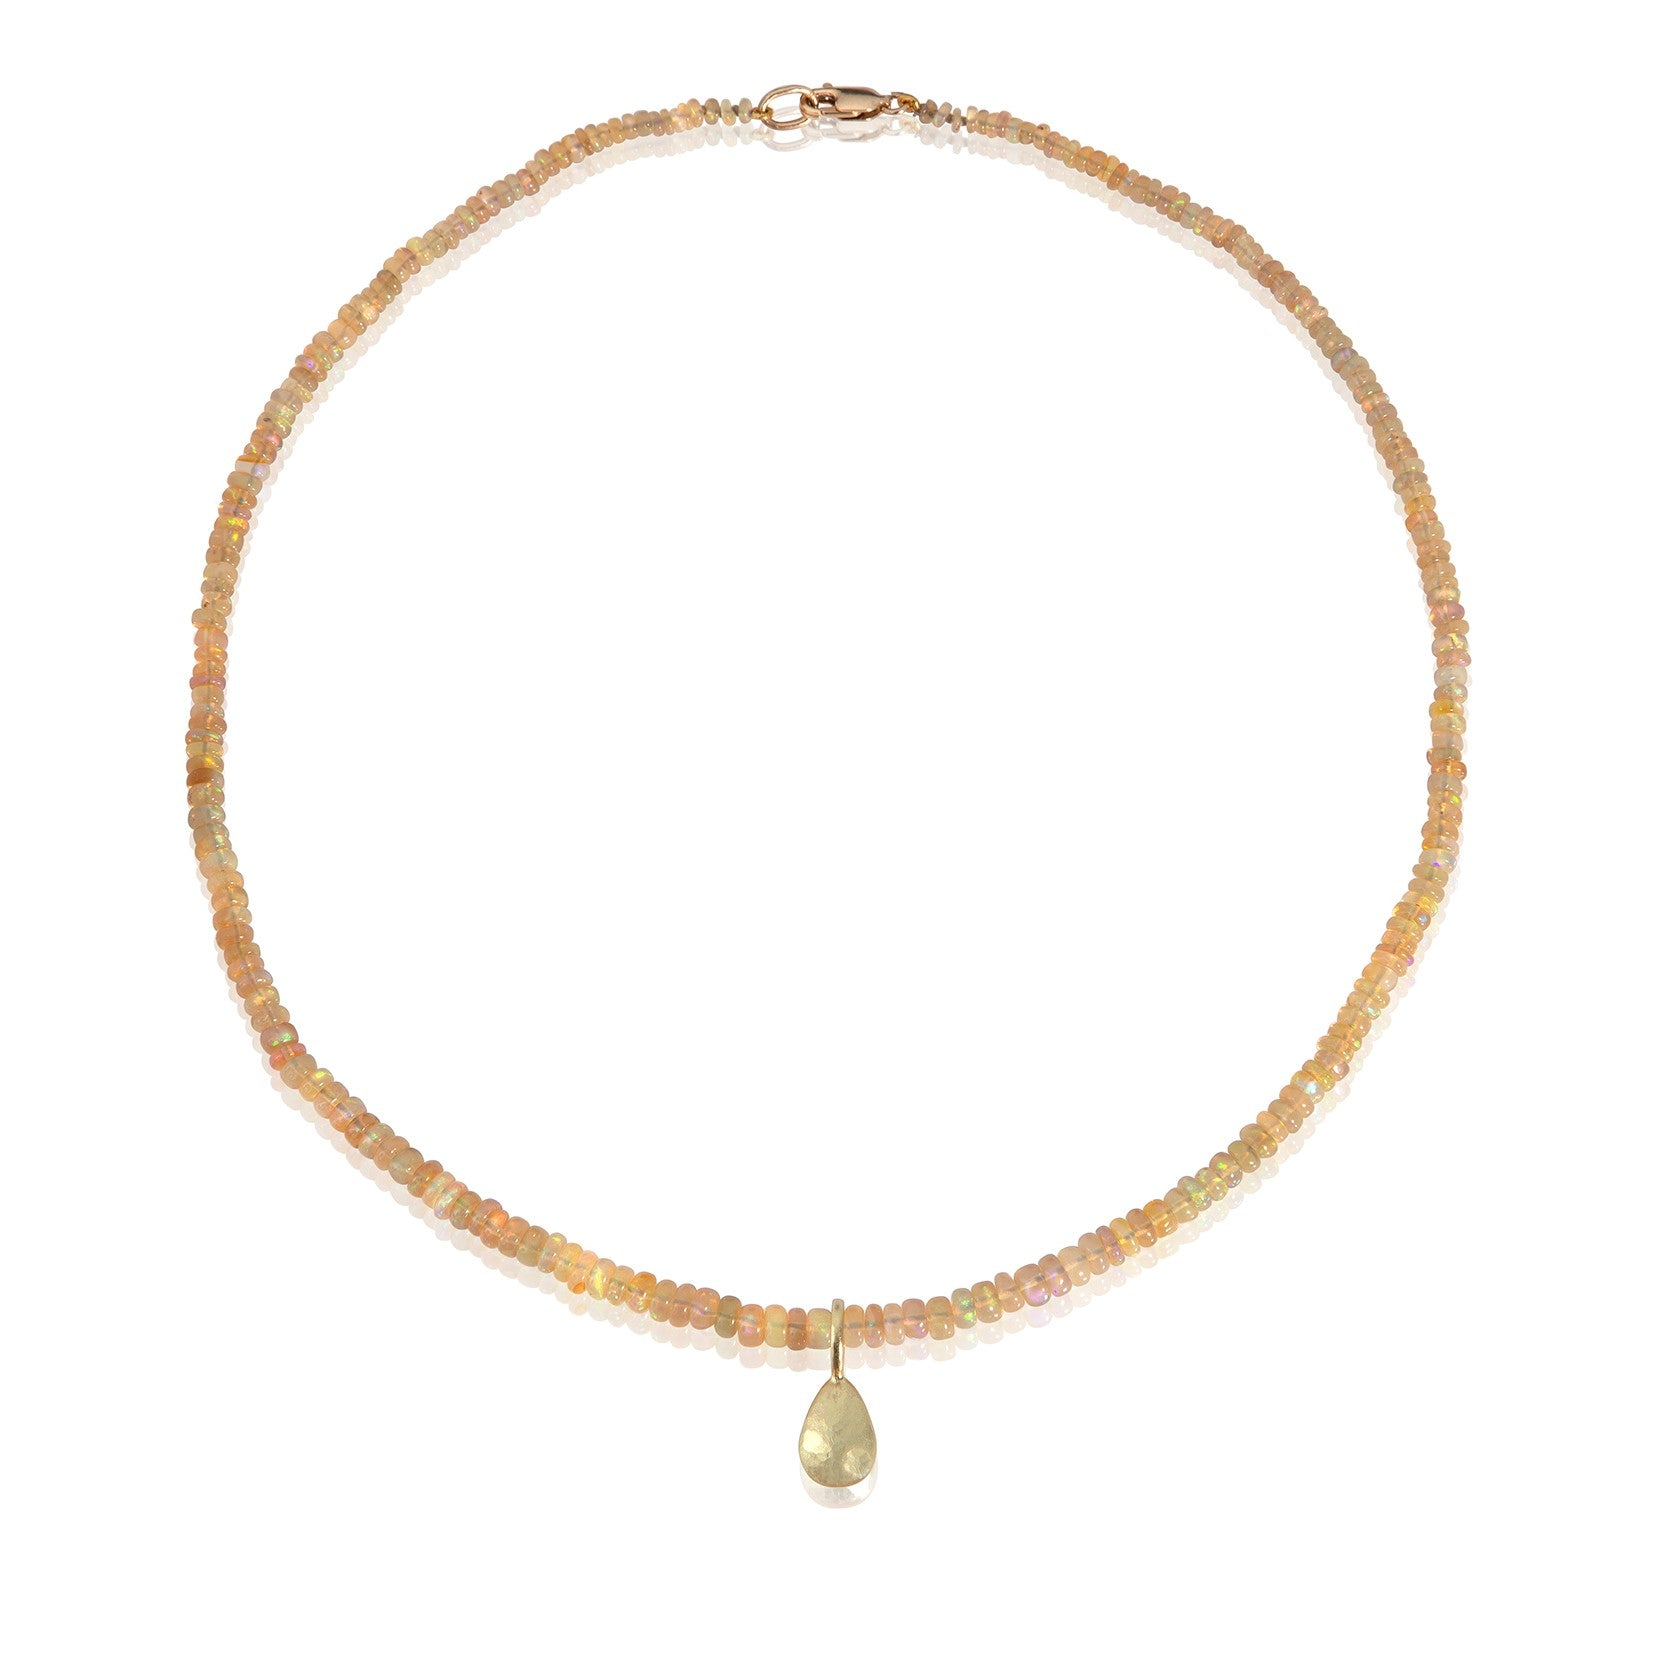 Yellow Opal bead necklace with detachable pendant